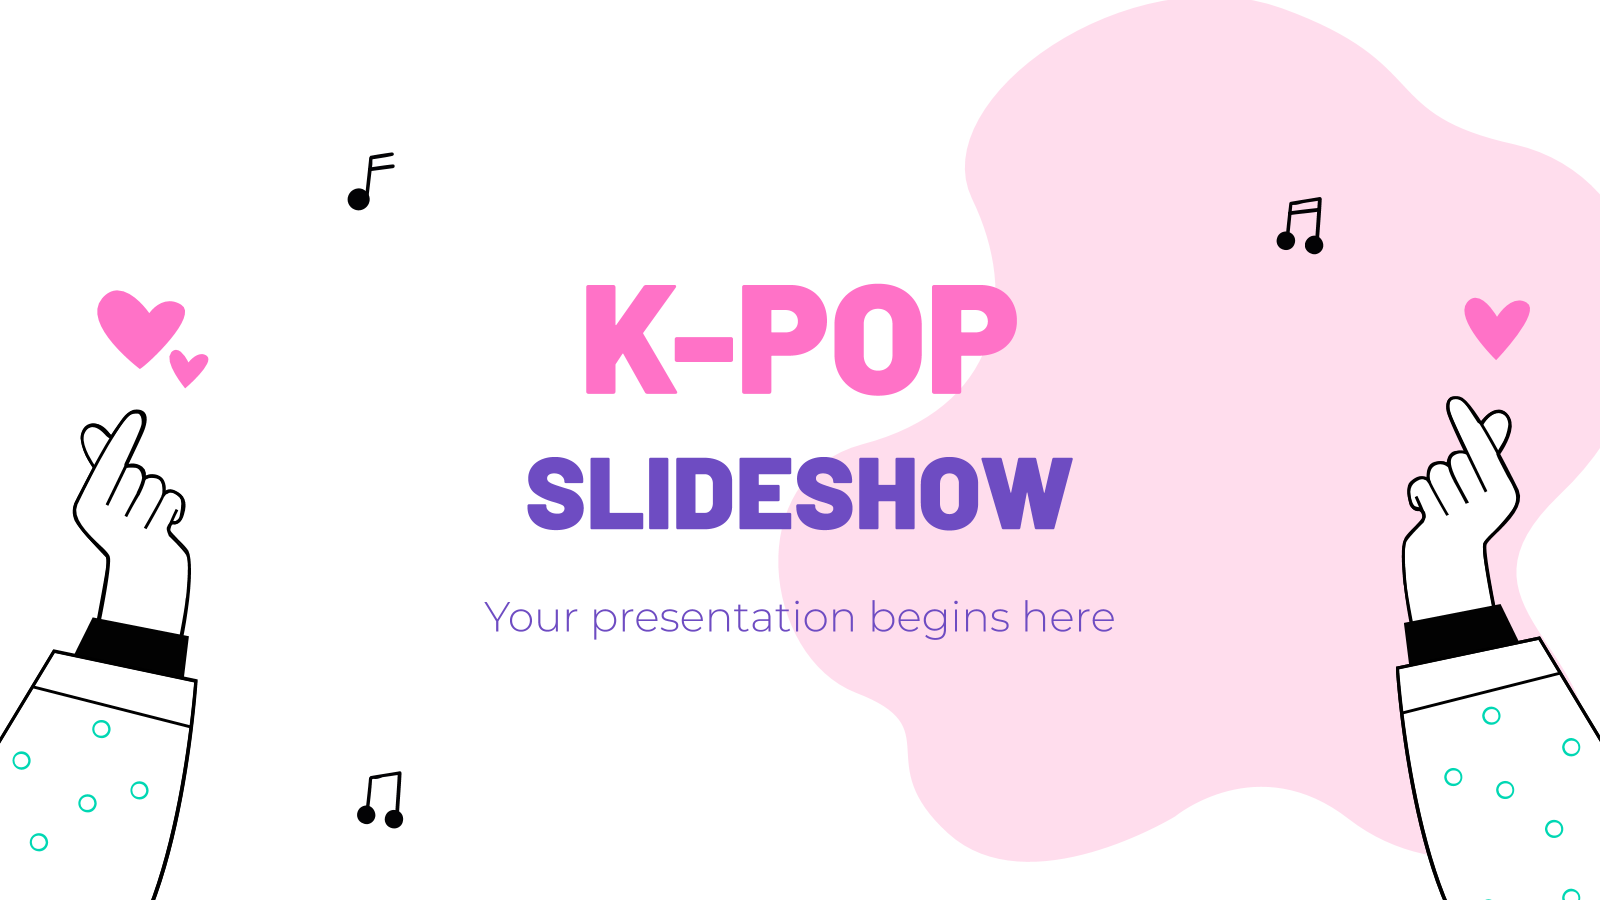 K-pop Slideshow presentation template